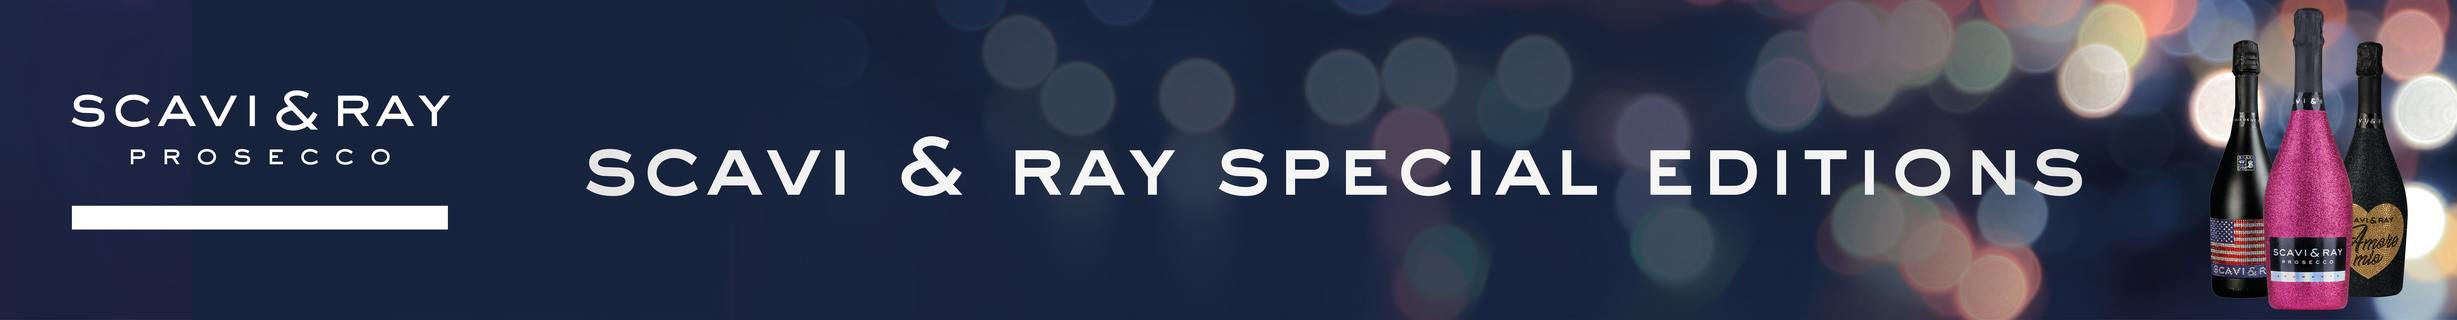 Scavi & Ray Special Editions